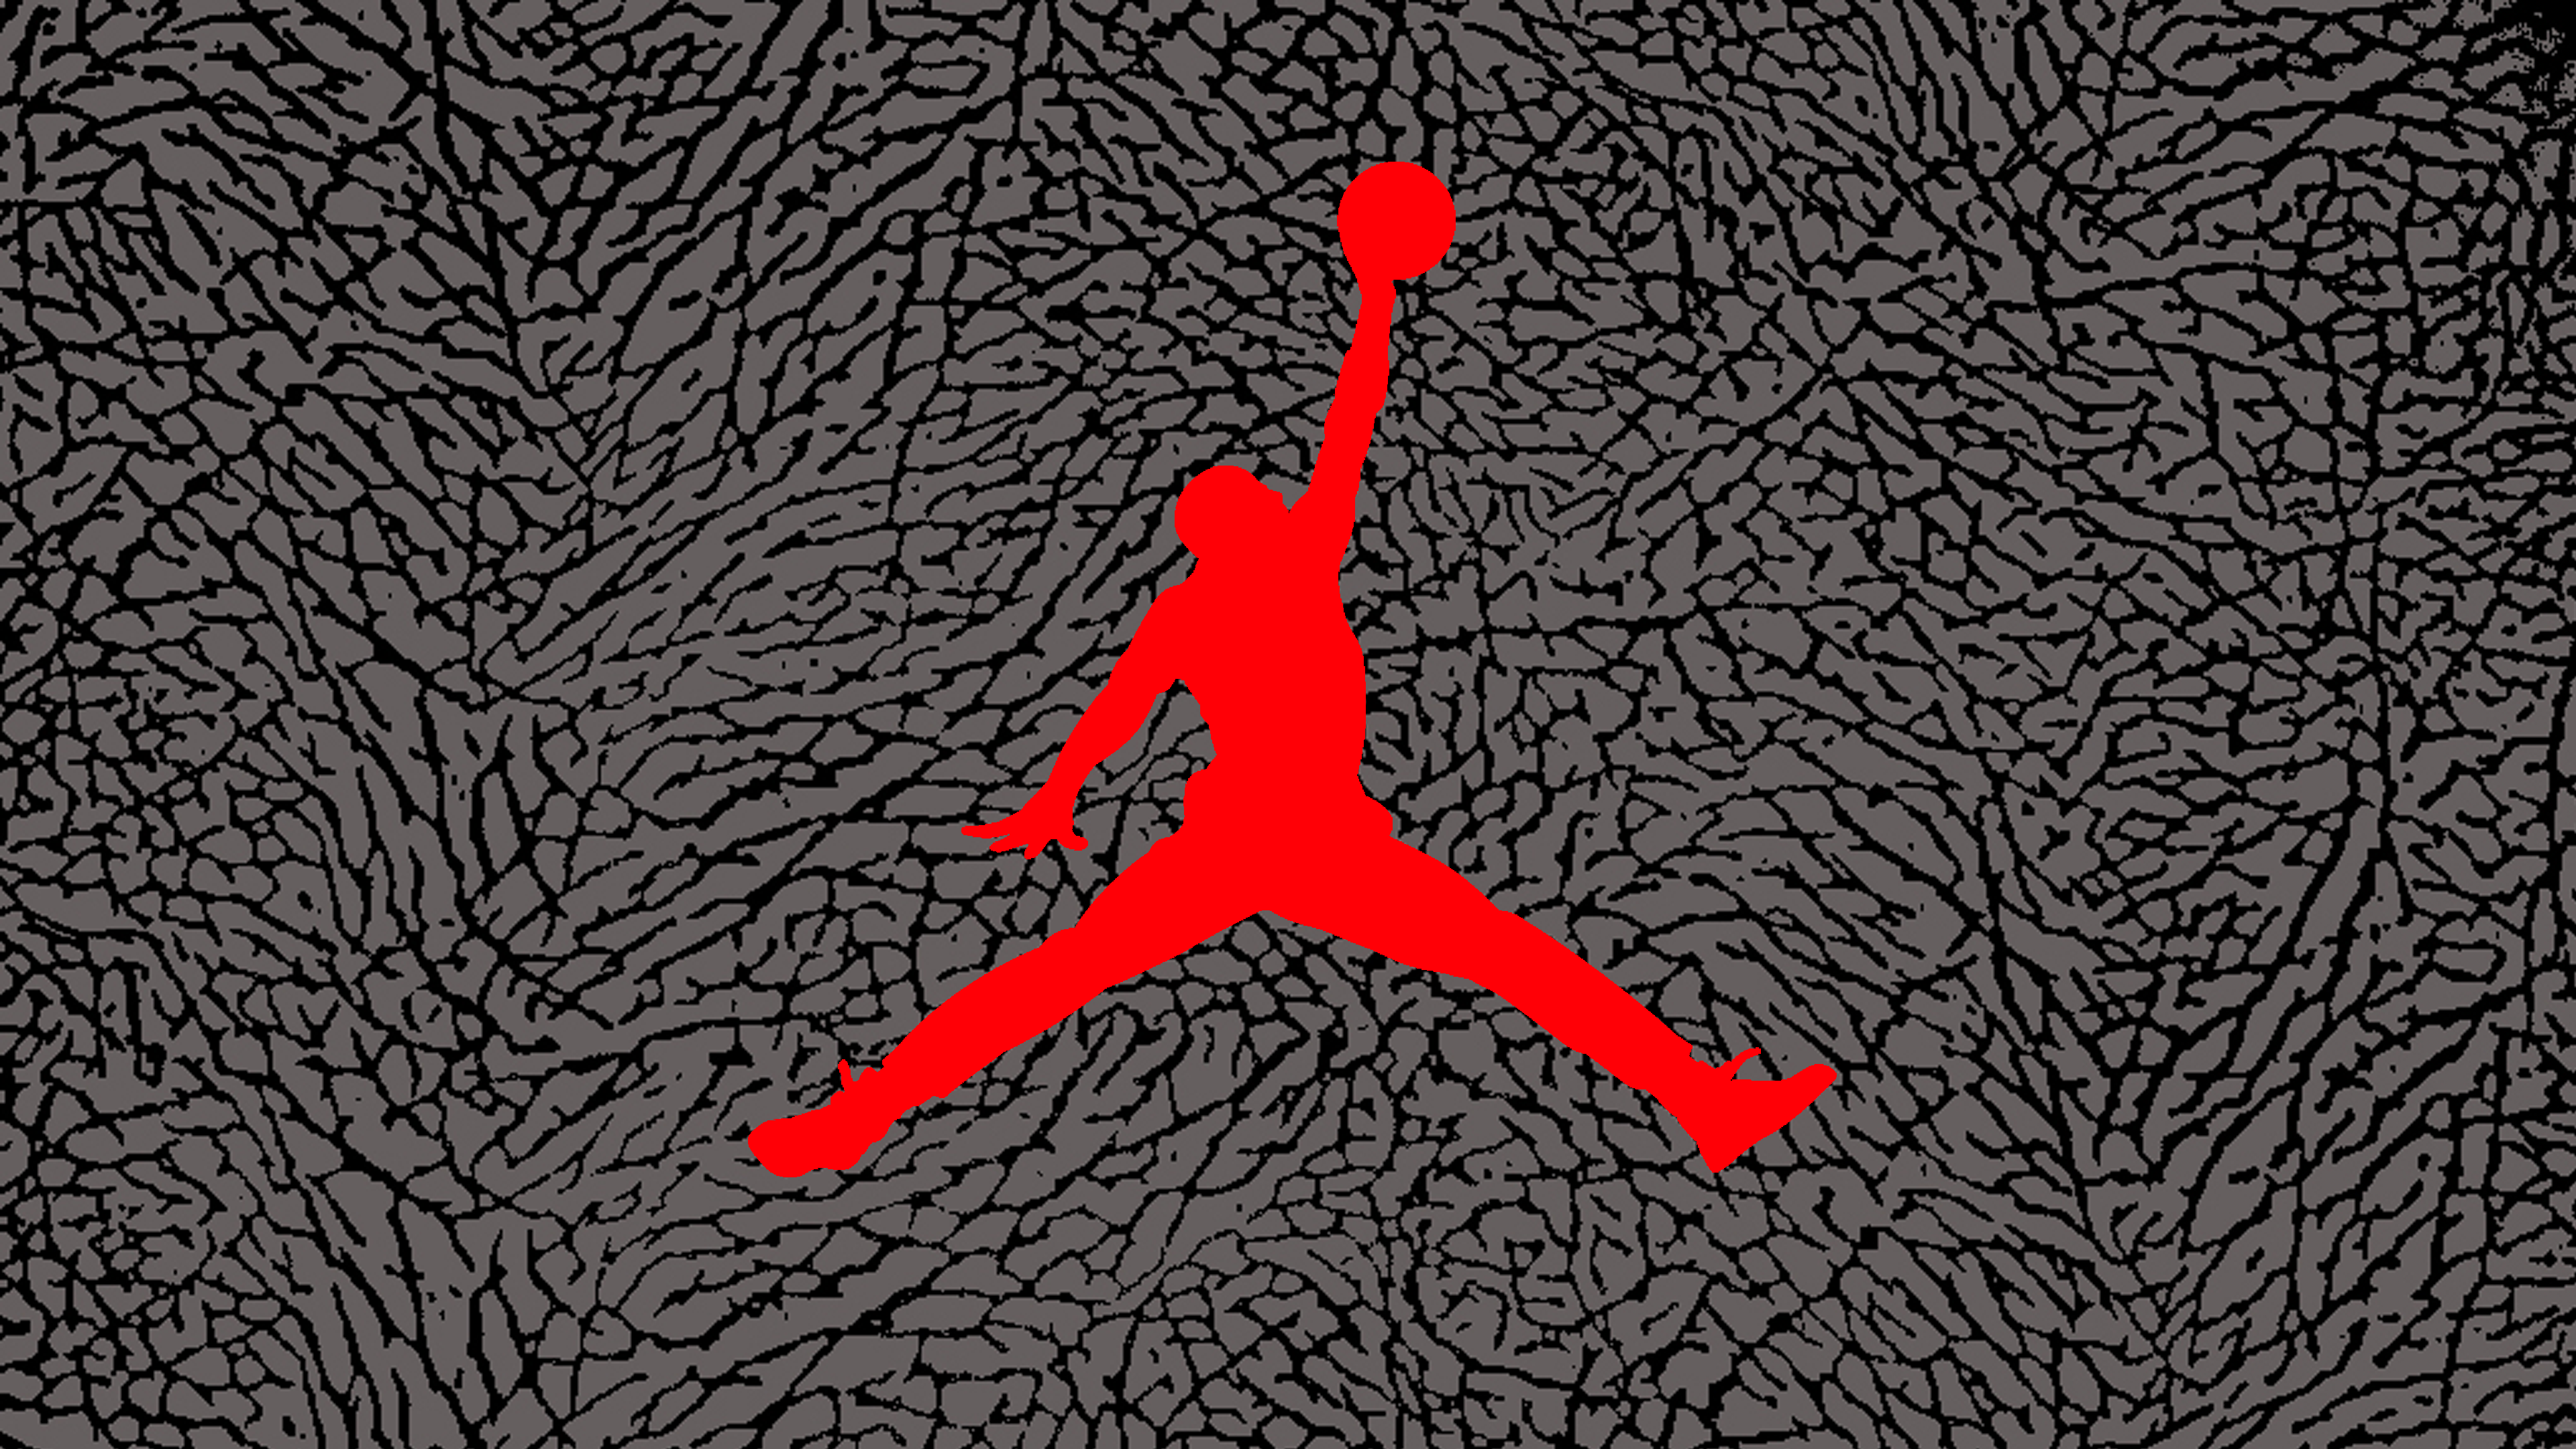 air jordan backgrounds milos gemaljevic artwork design